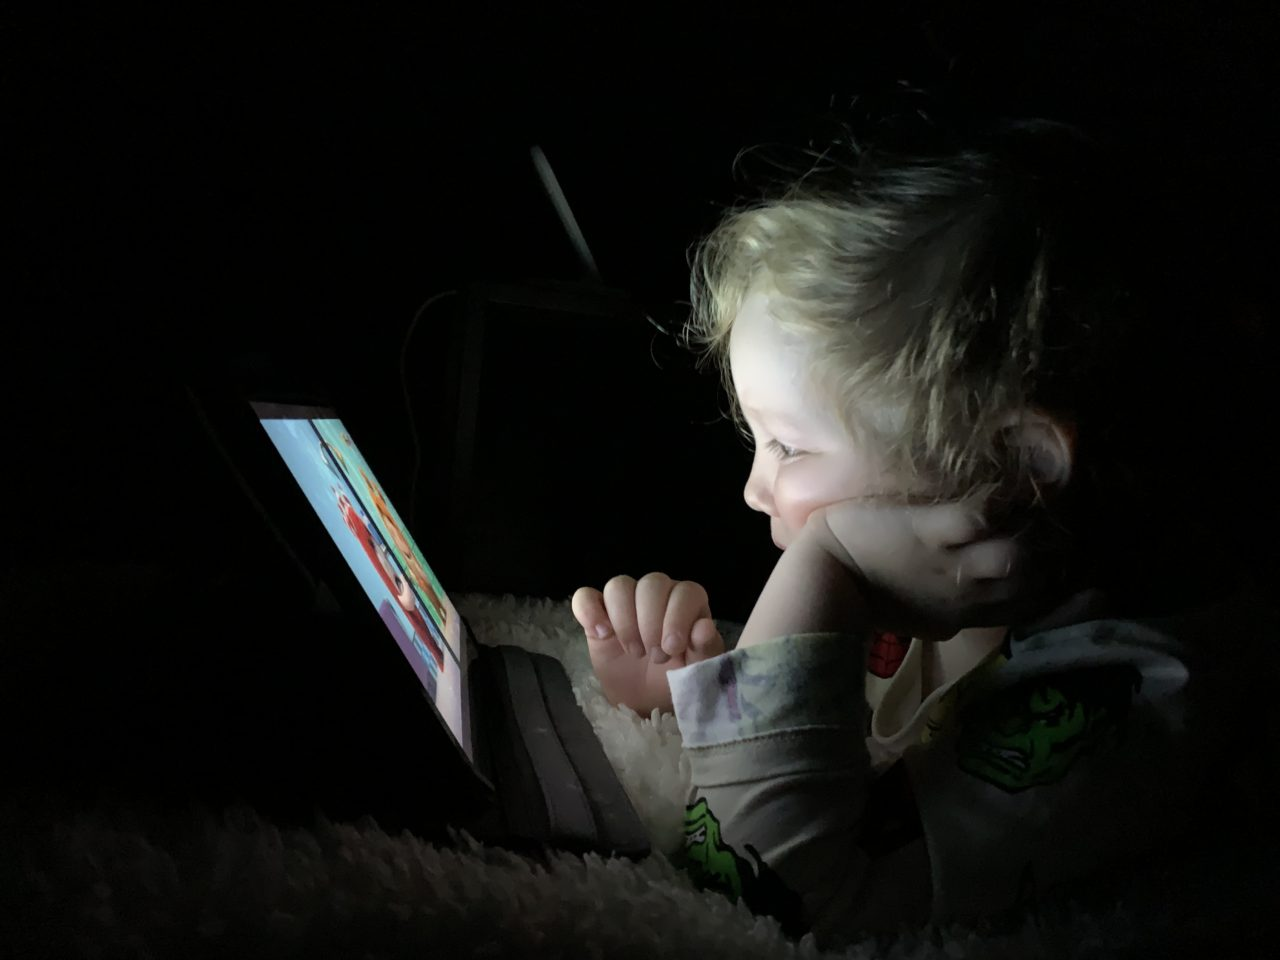 Kid Watching A Netflix Show On A Tablet In The Dark